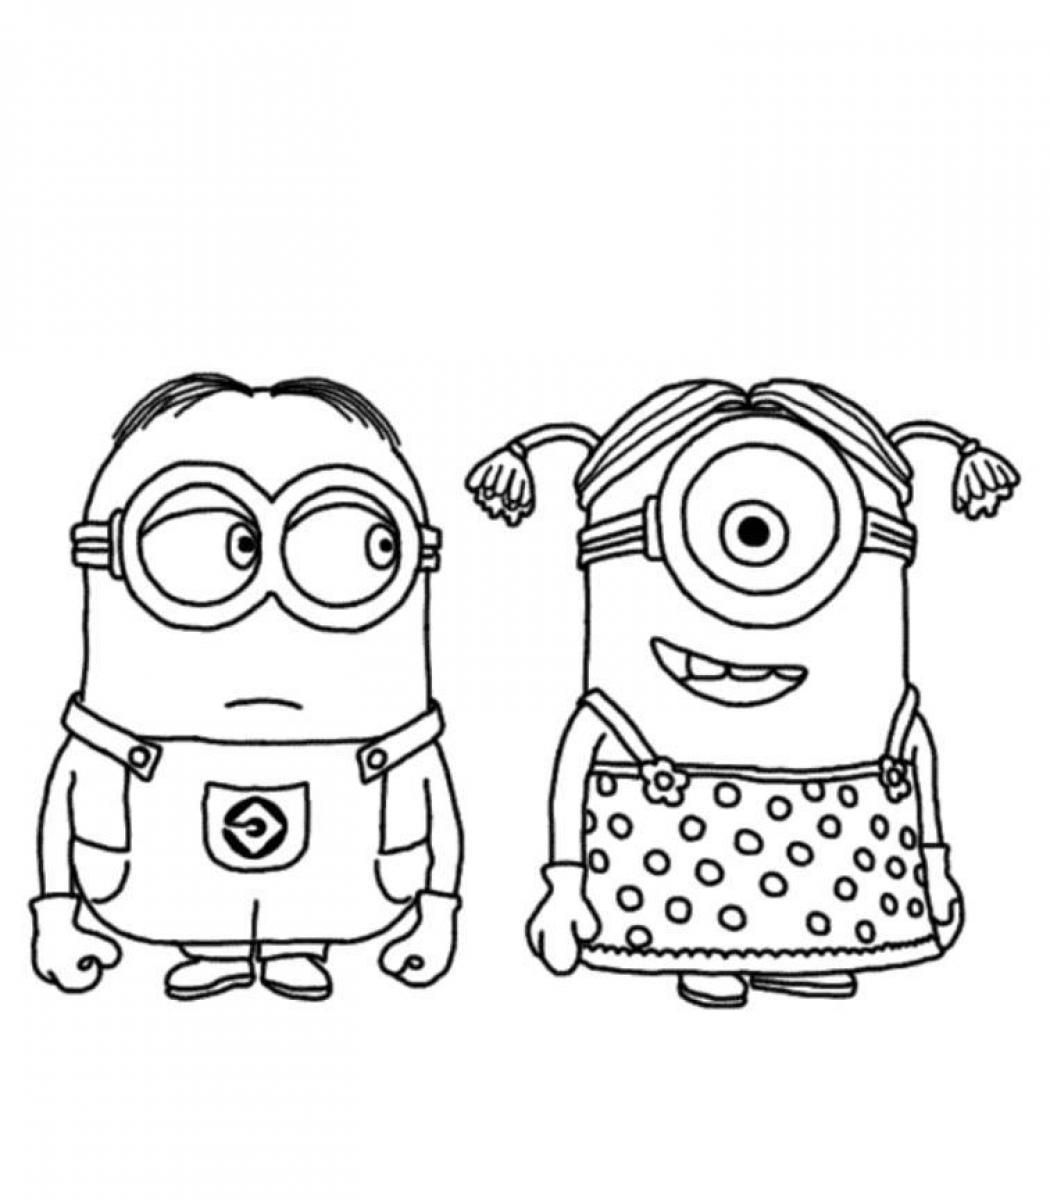 Kids coloring book pages free - Minion Coloring Pages Free Online Printable Coloring Pages Sheets For Kids Get The Latest Free Minion Coloring Pages Images Favorite Coloring Pages To